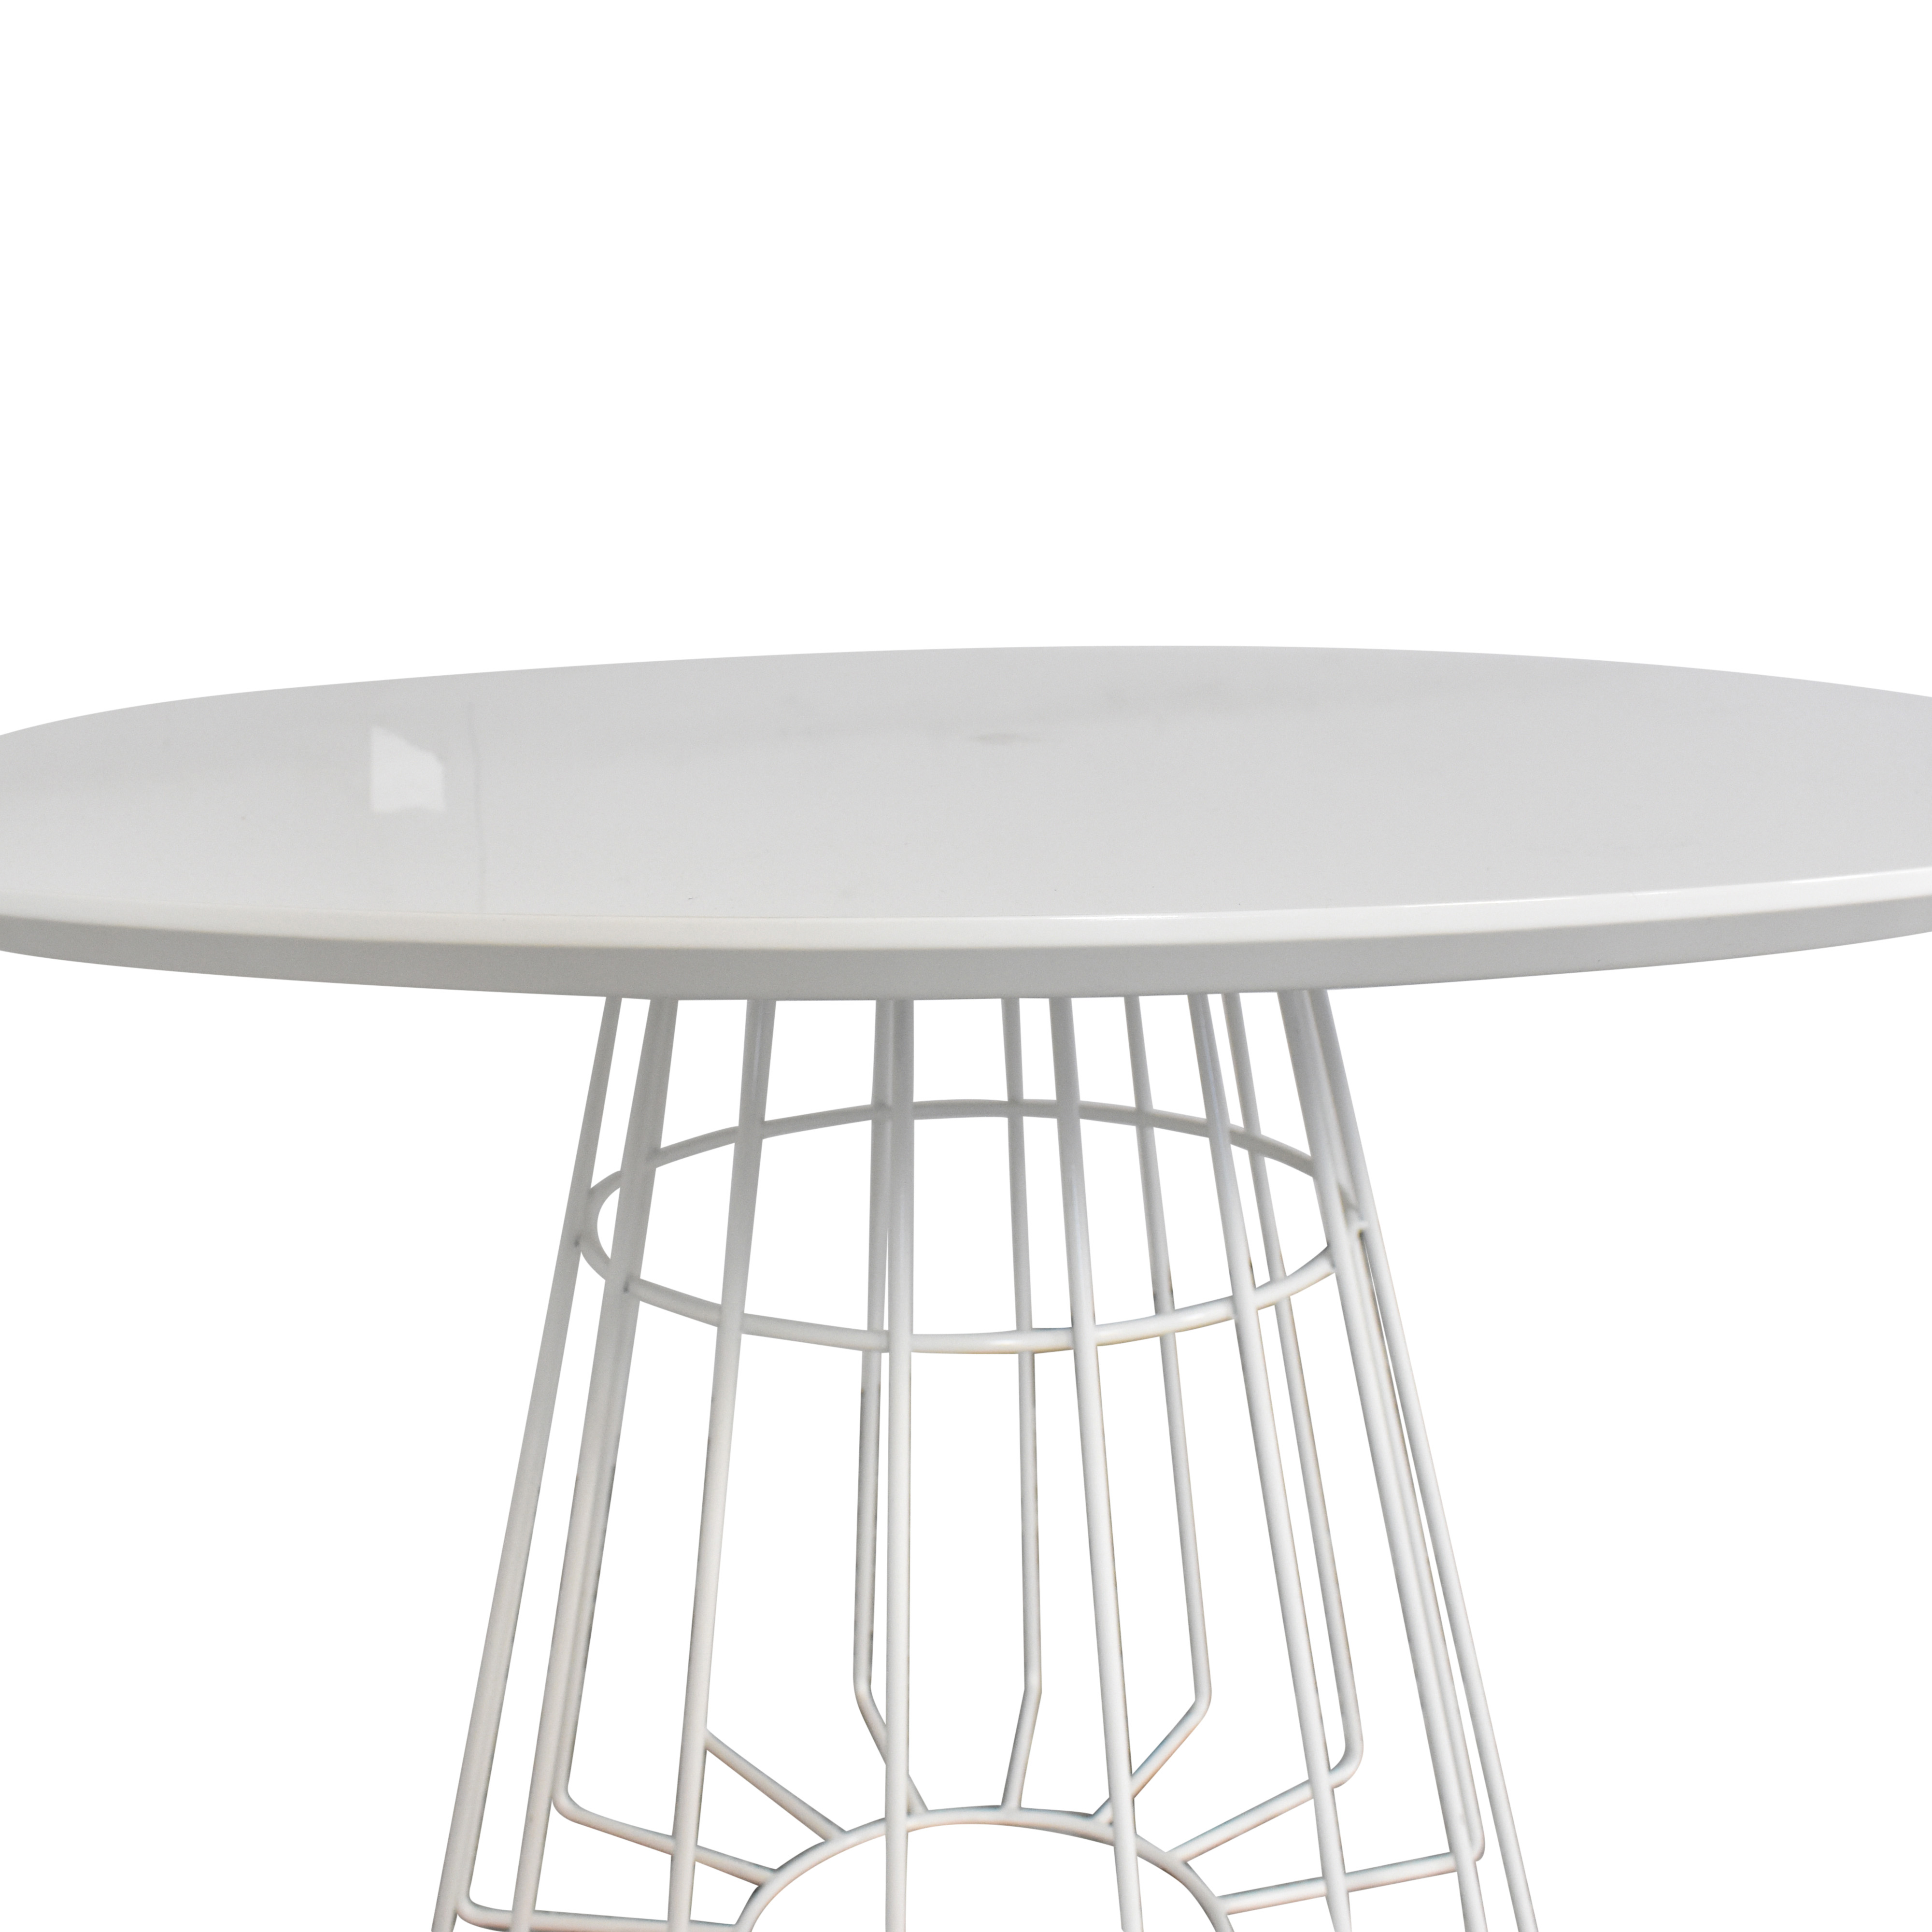 CB2 CB2 Compass Dining Table ma